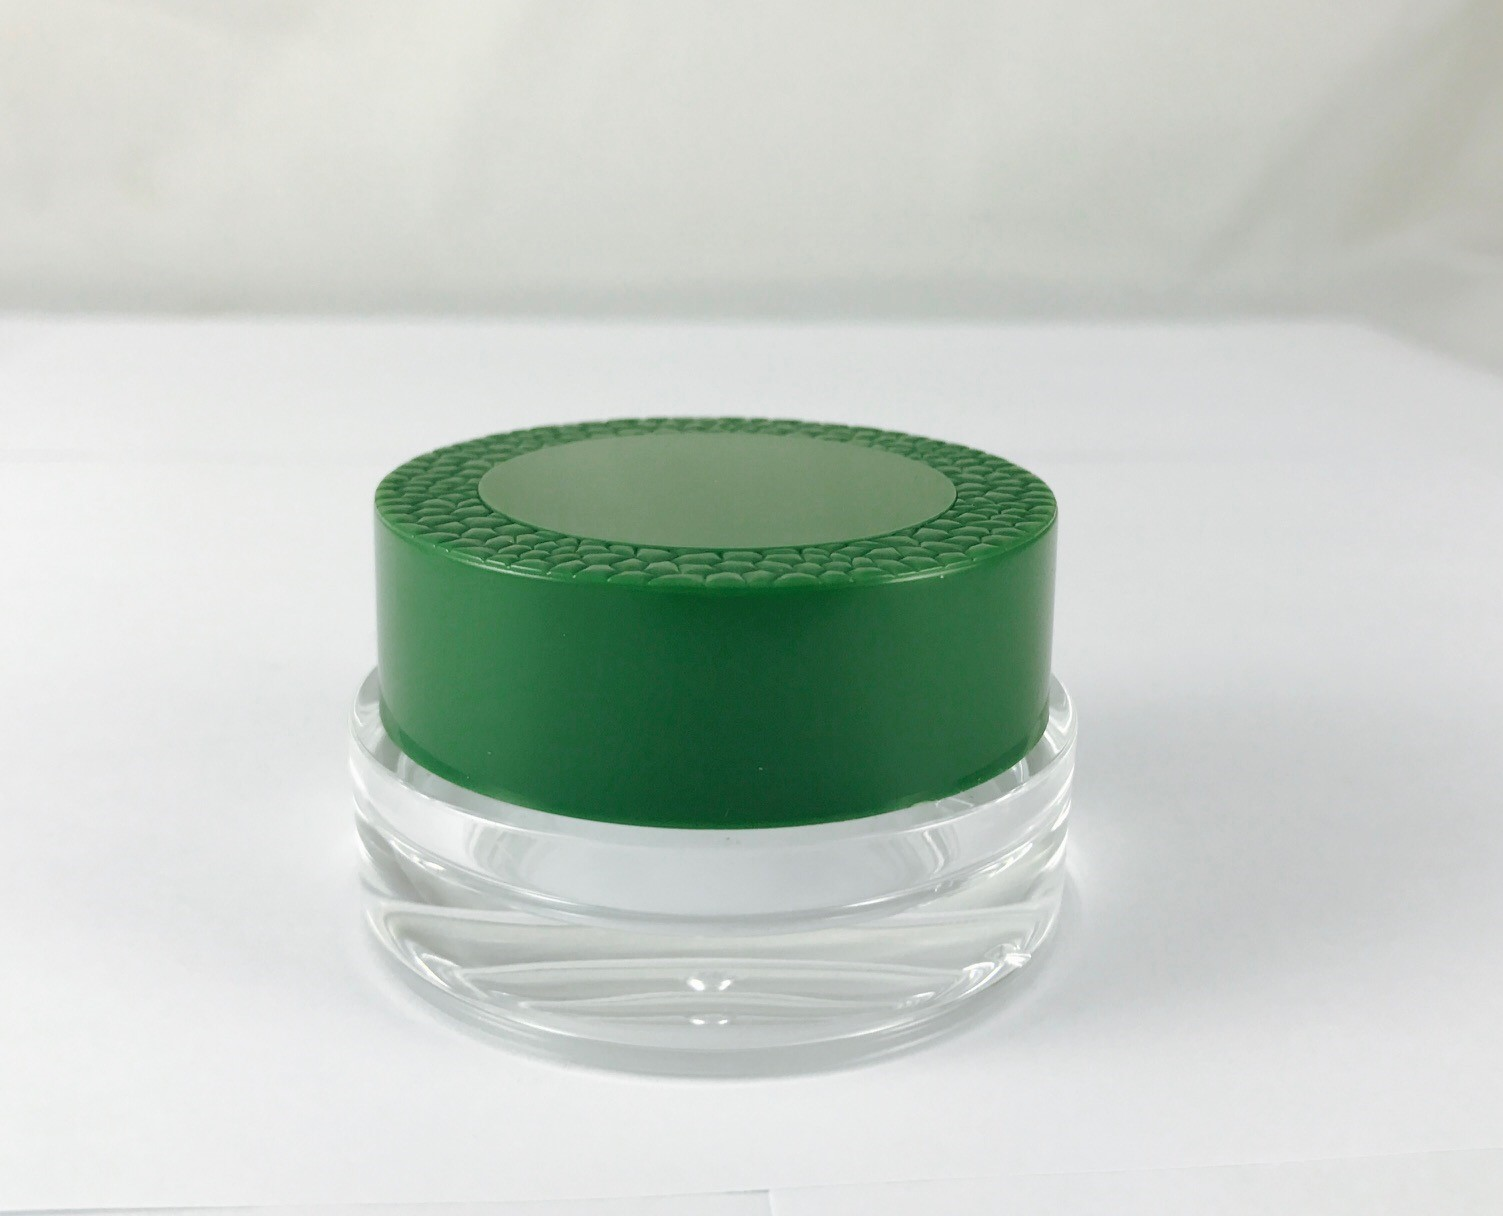 Round green injection cap